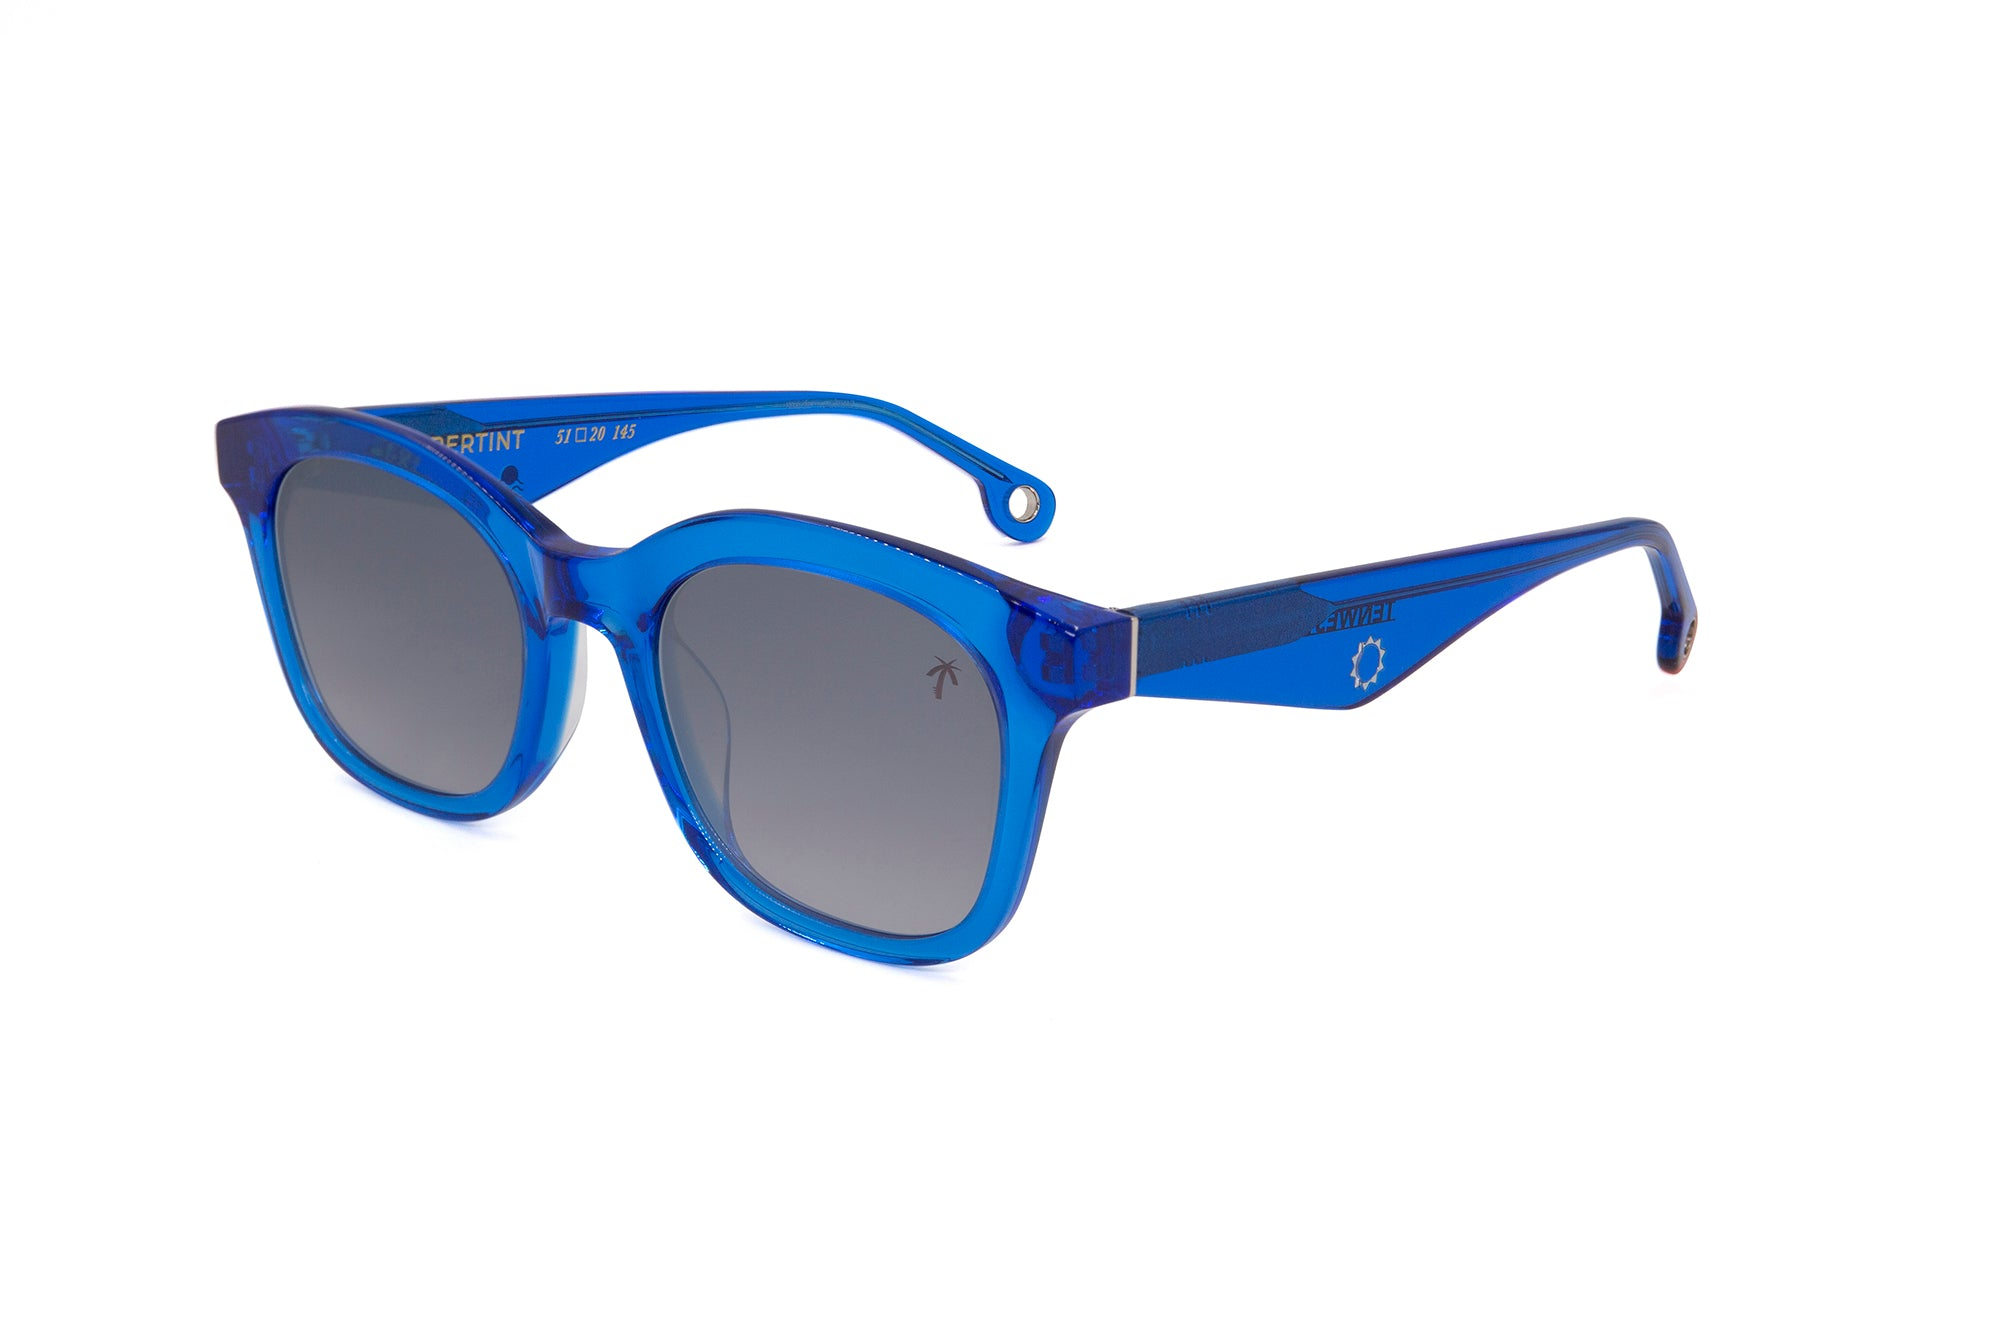 TenWest in Blue - Peppertint - Designer sunglasses